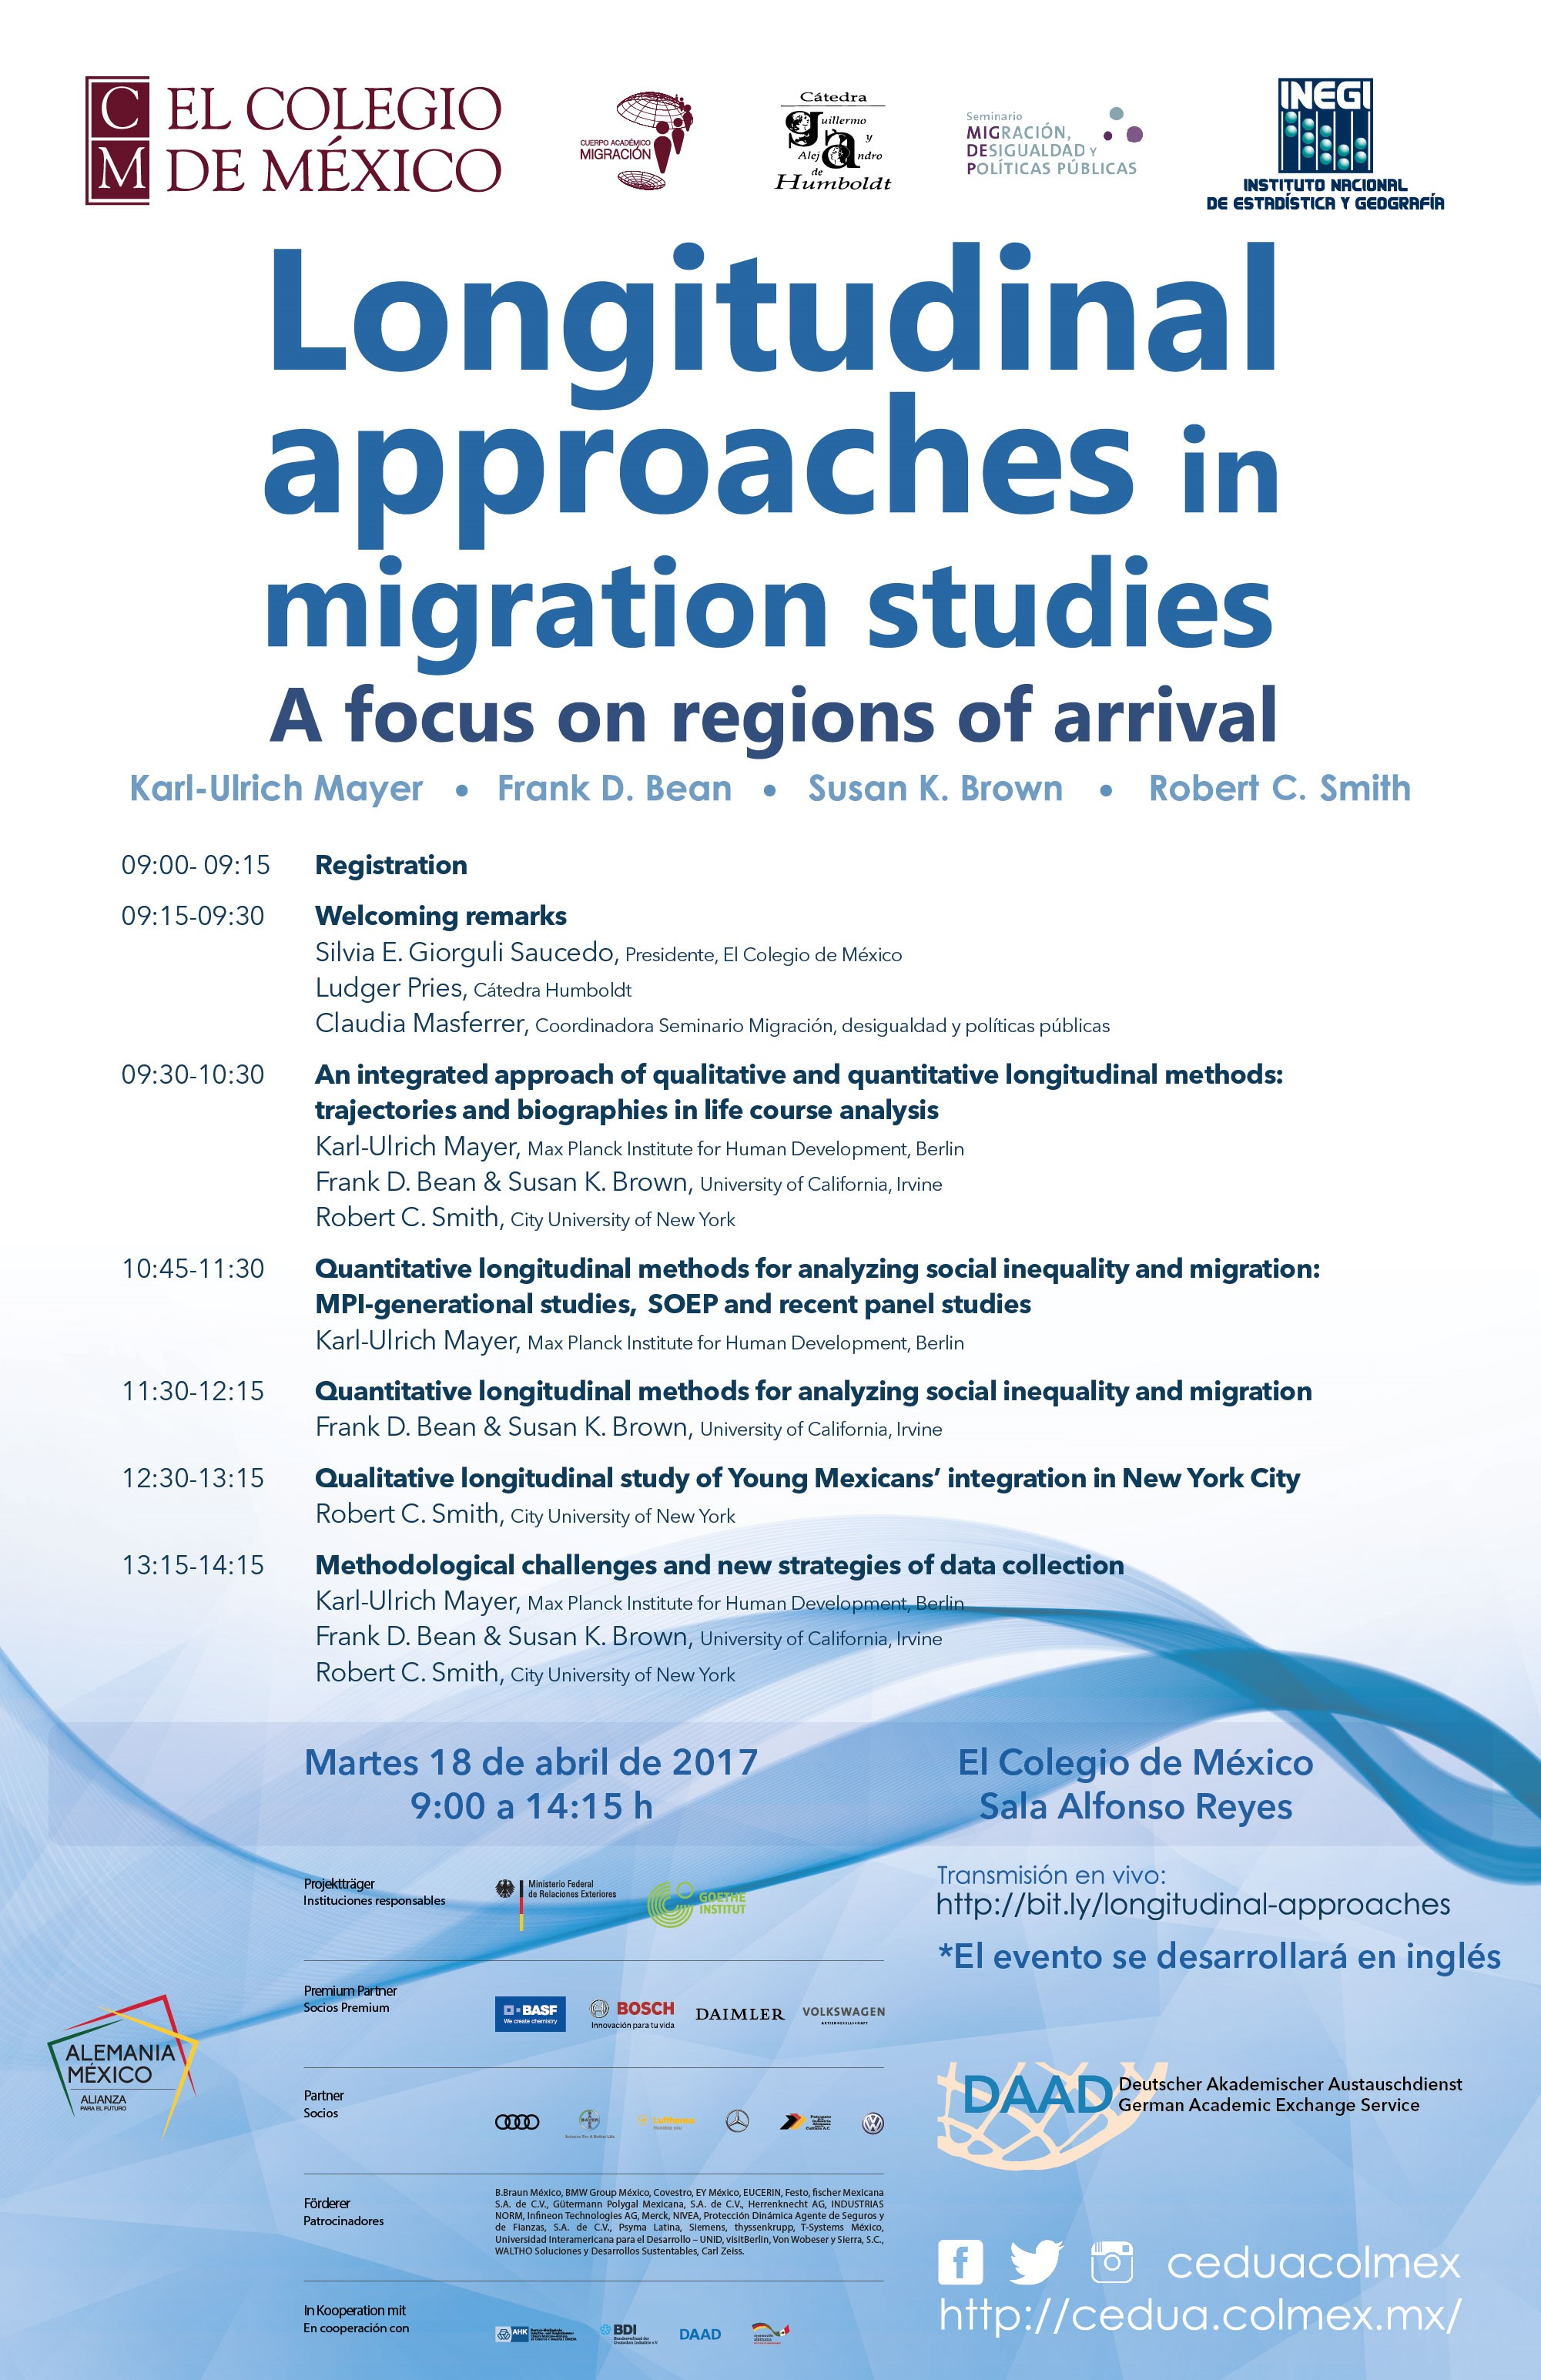 Seminario sobre aproximaciones longitudinales en los estudios de migración. Regiones de arribo./ Longitudinal approaches in migration studies. A focus on regions of arrival.